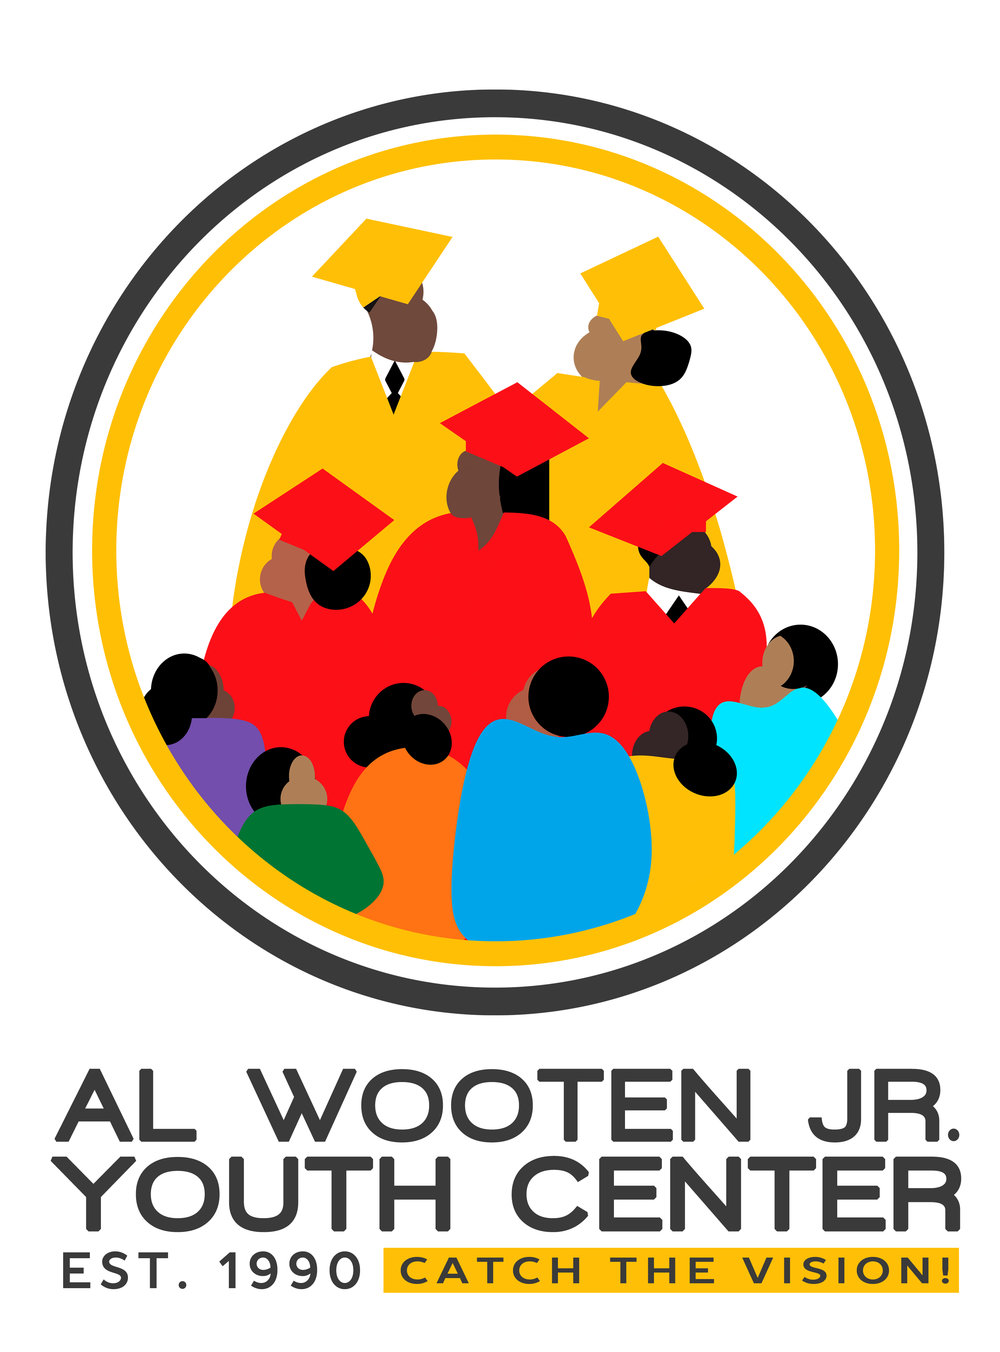 Wooten Logo Vertical - youth center.jpg